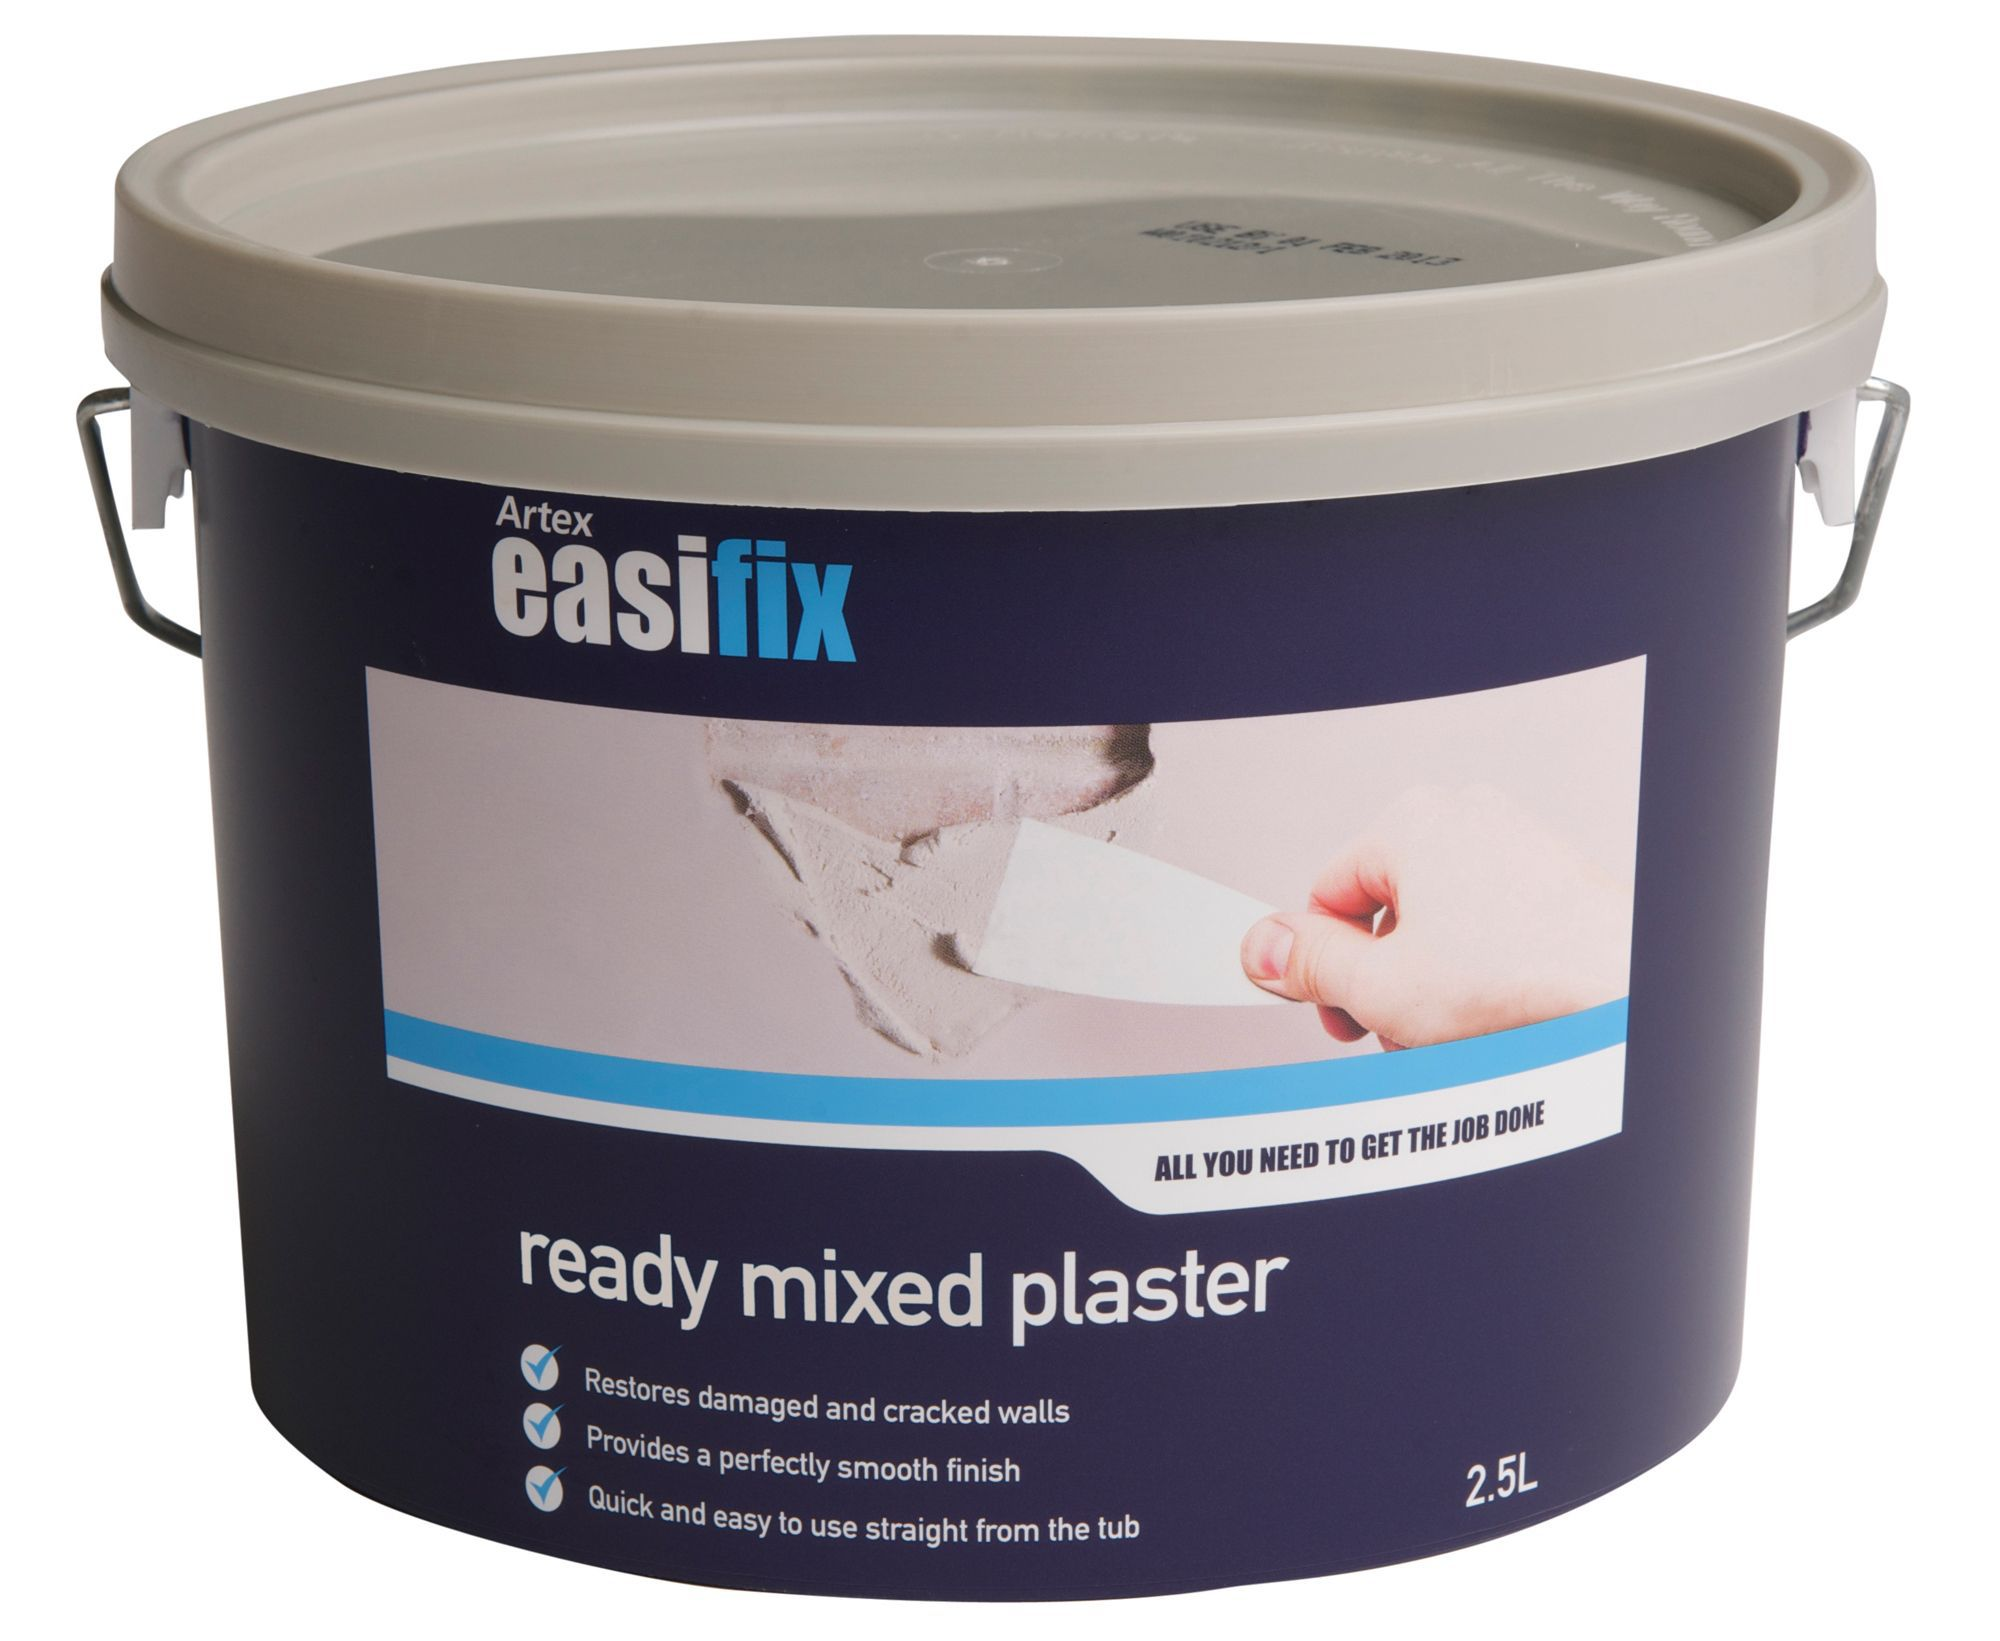 on site ready mix plaster comparison